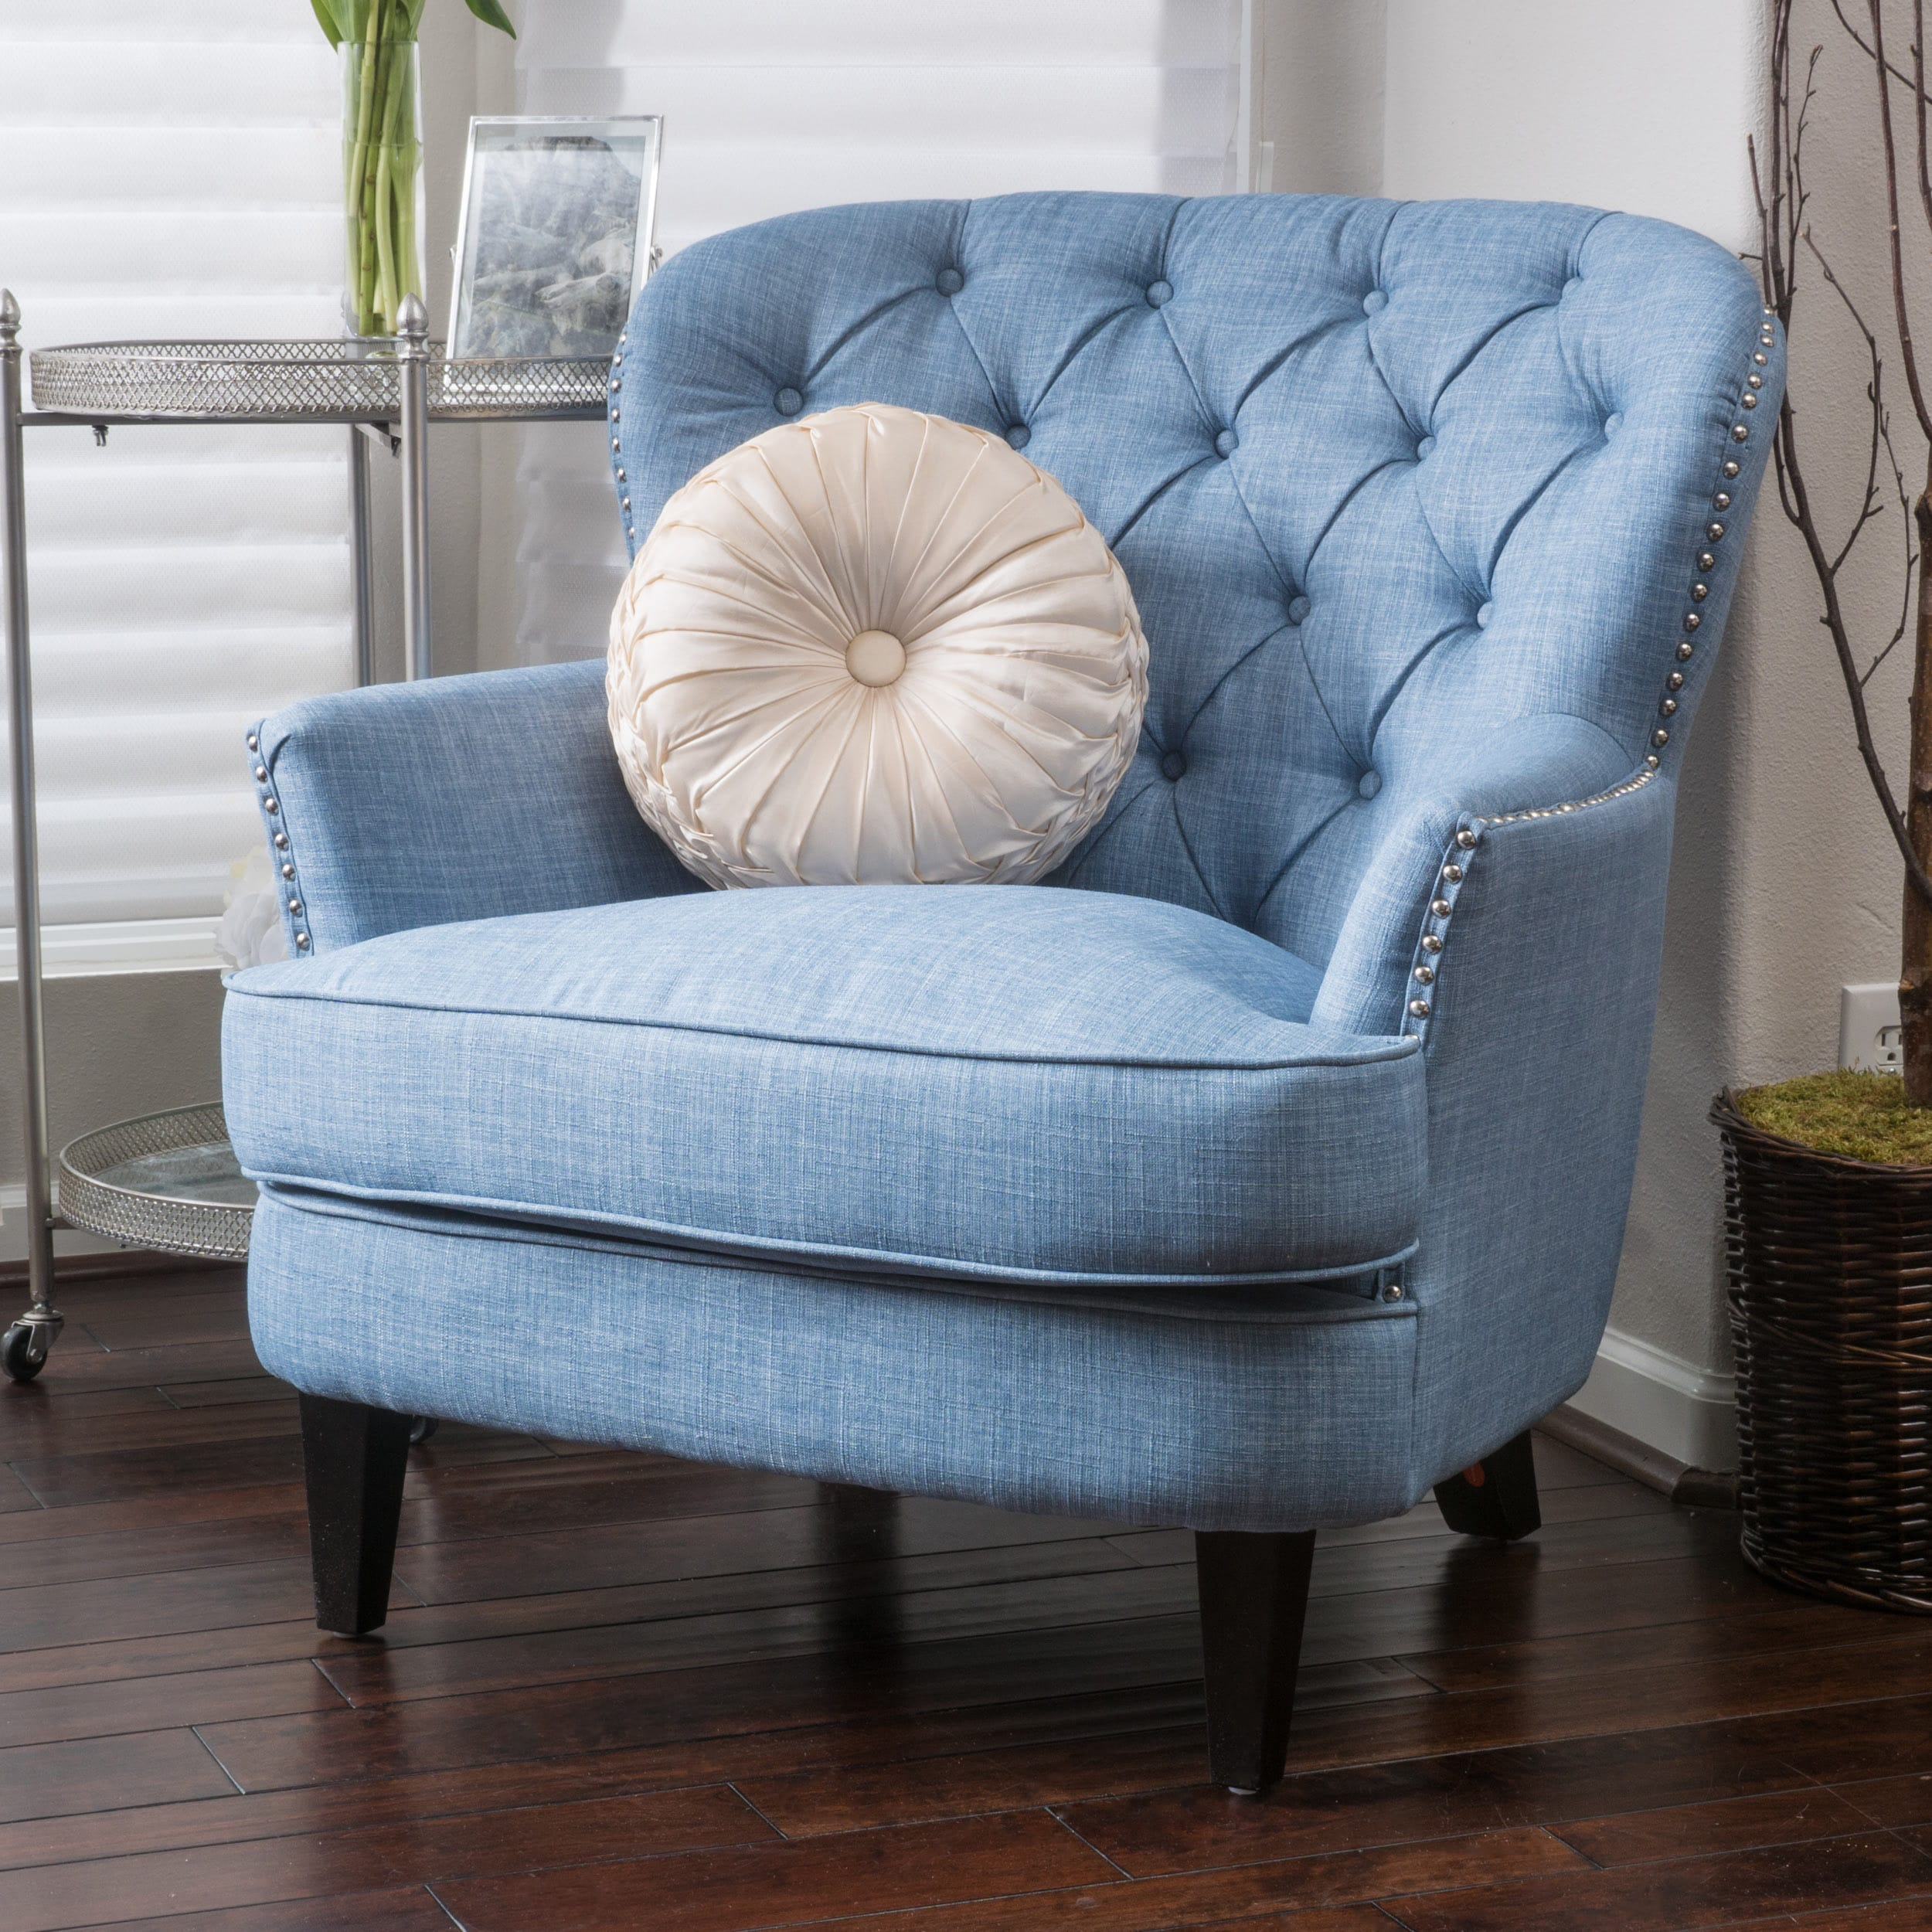 teal club chair cover rentals las cruces nm shop tafton tufted oversized fabric by christopher knight home